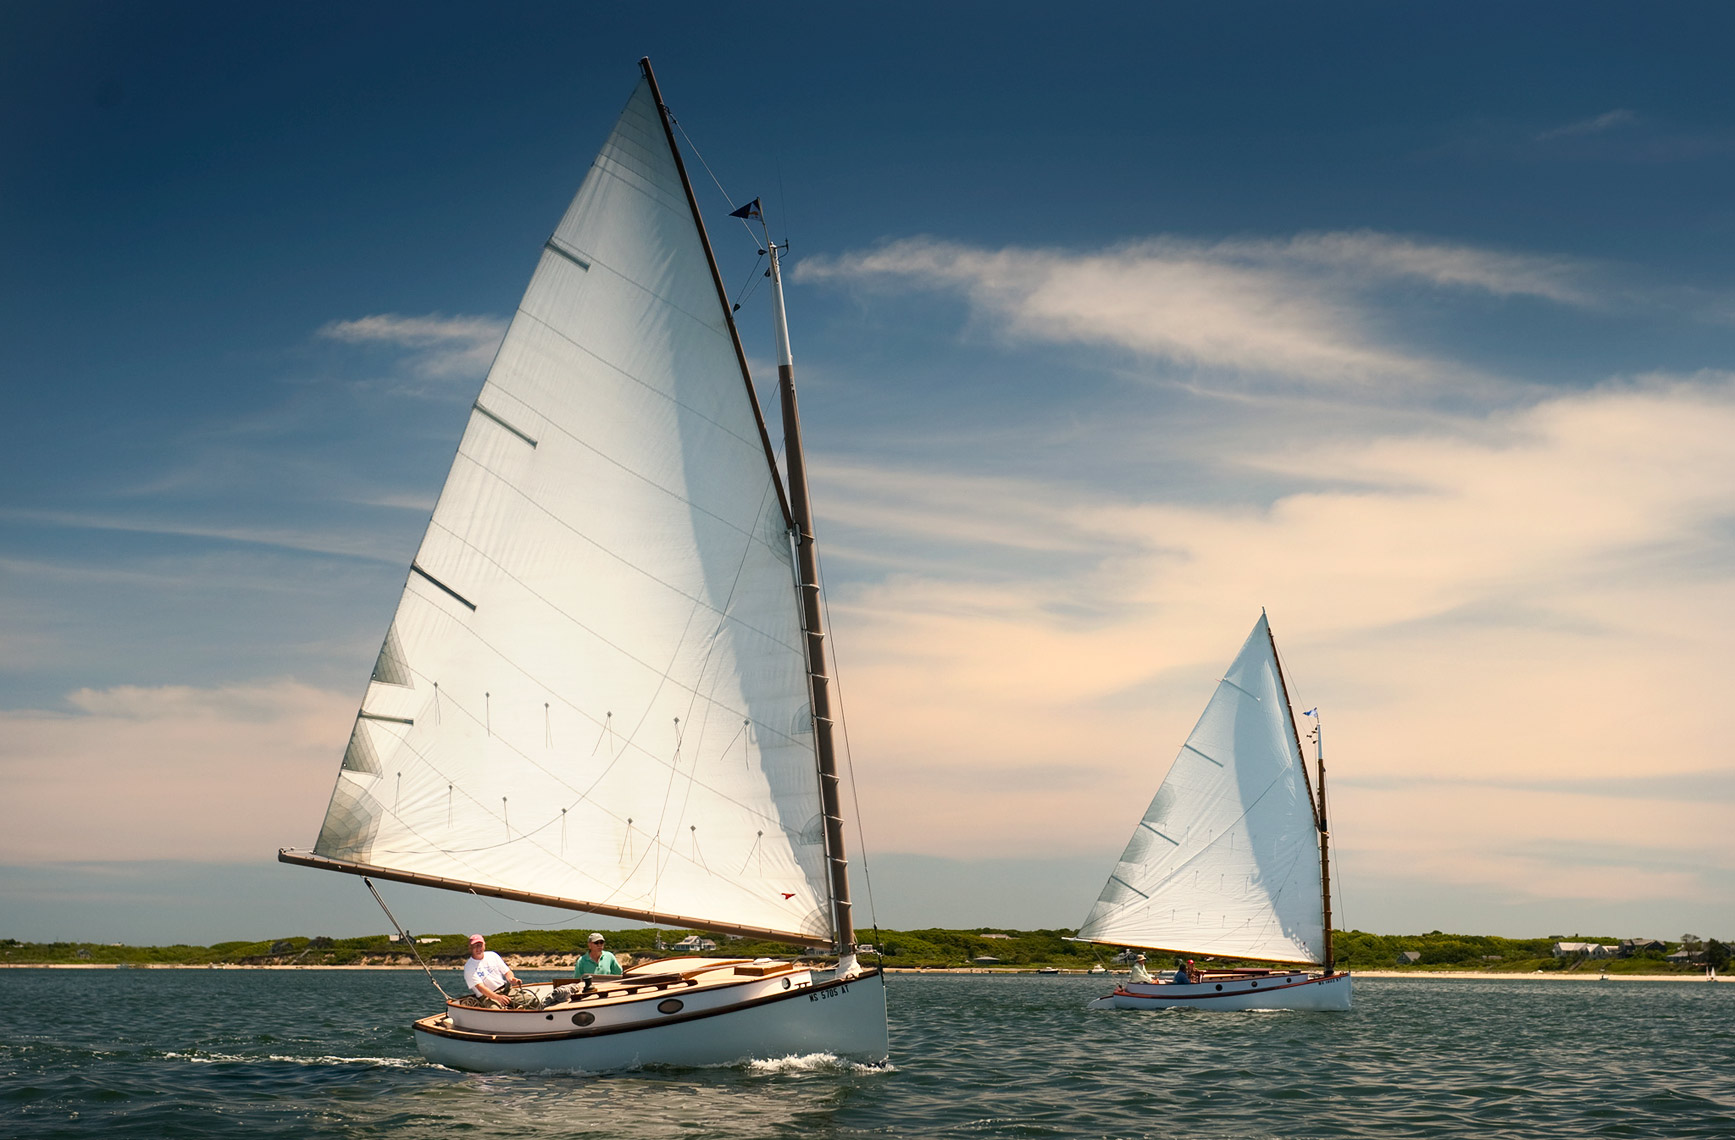 2 catboats saling in Nantucket Harbor